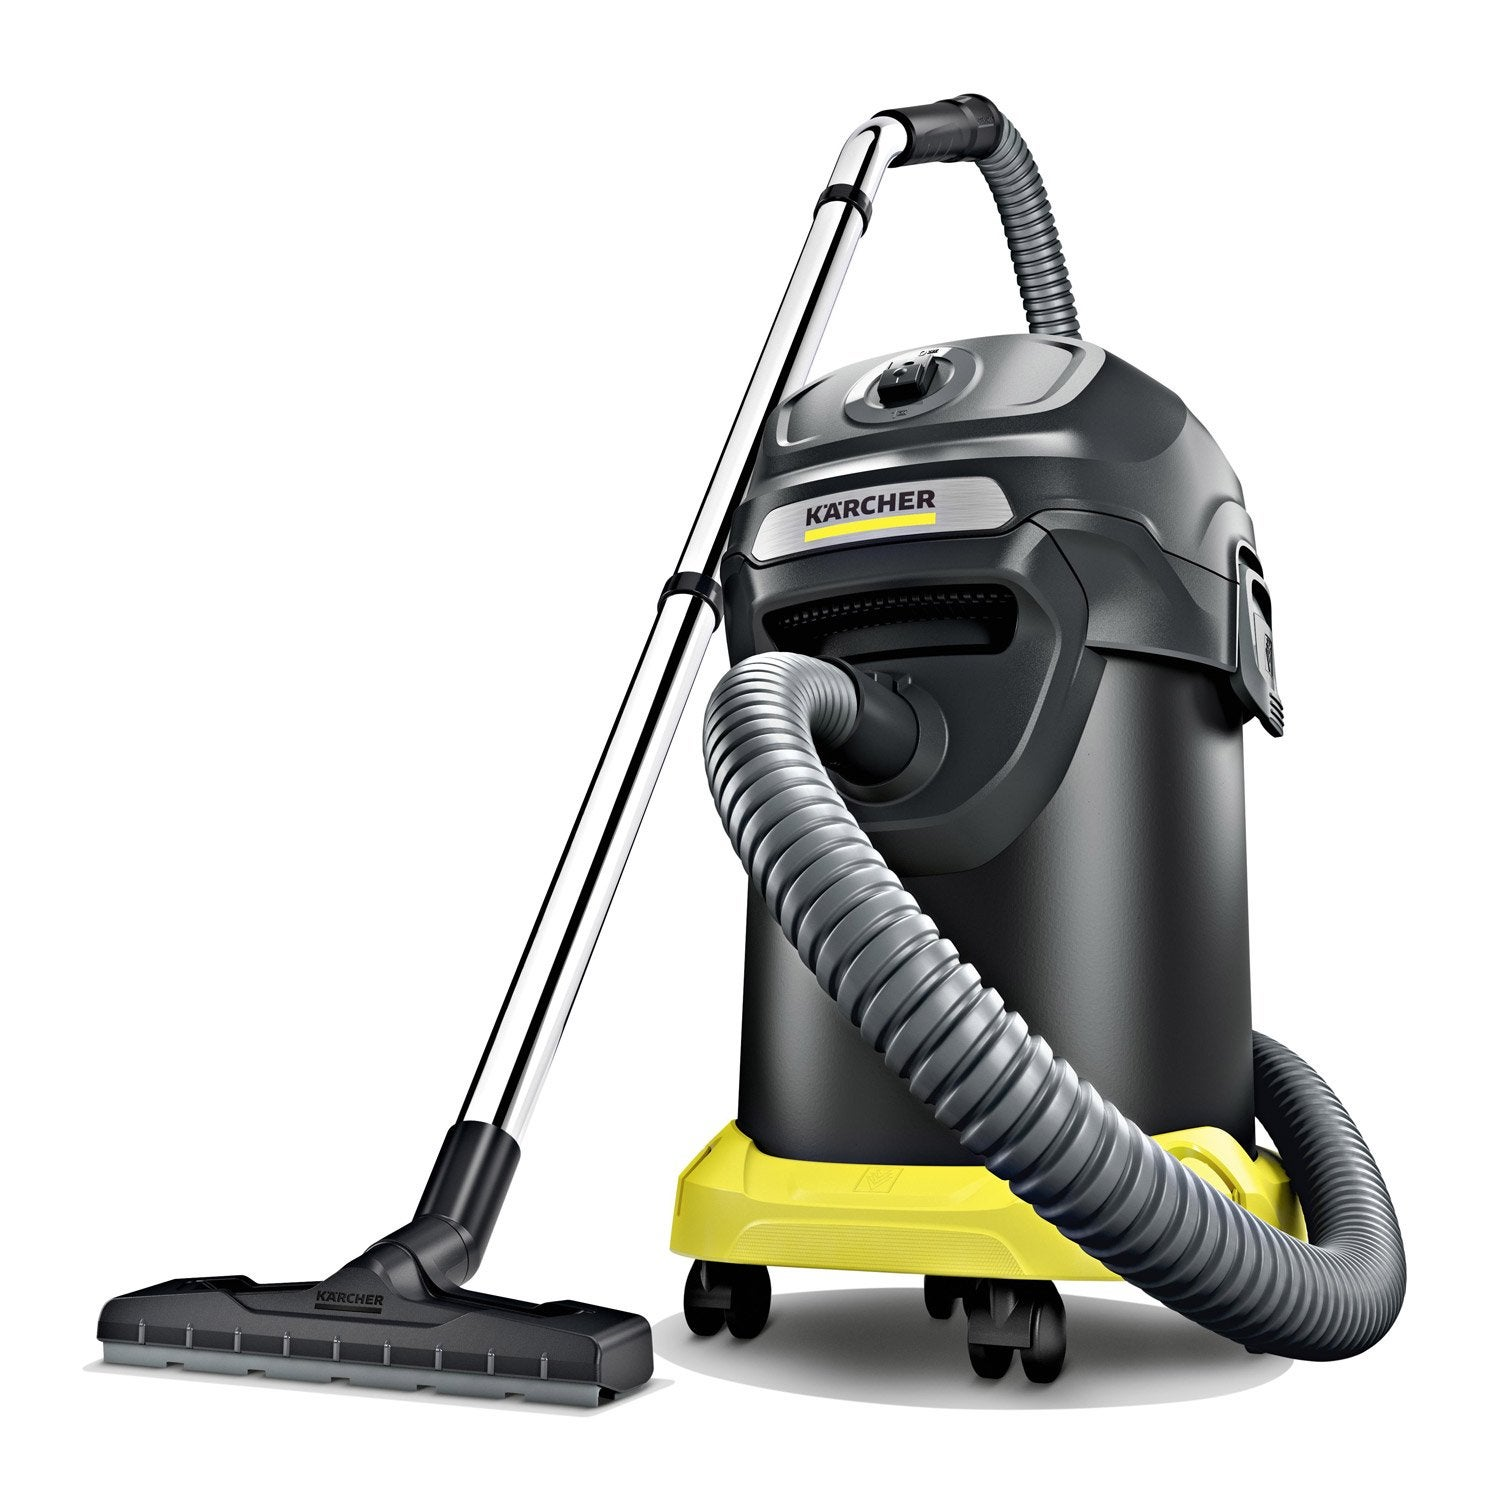 aspirateur karcher maison excellent rangement with aspirateur karcher maison stunning. Black Bedroom Furniture Sets. Home Design Ideas